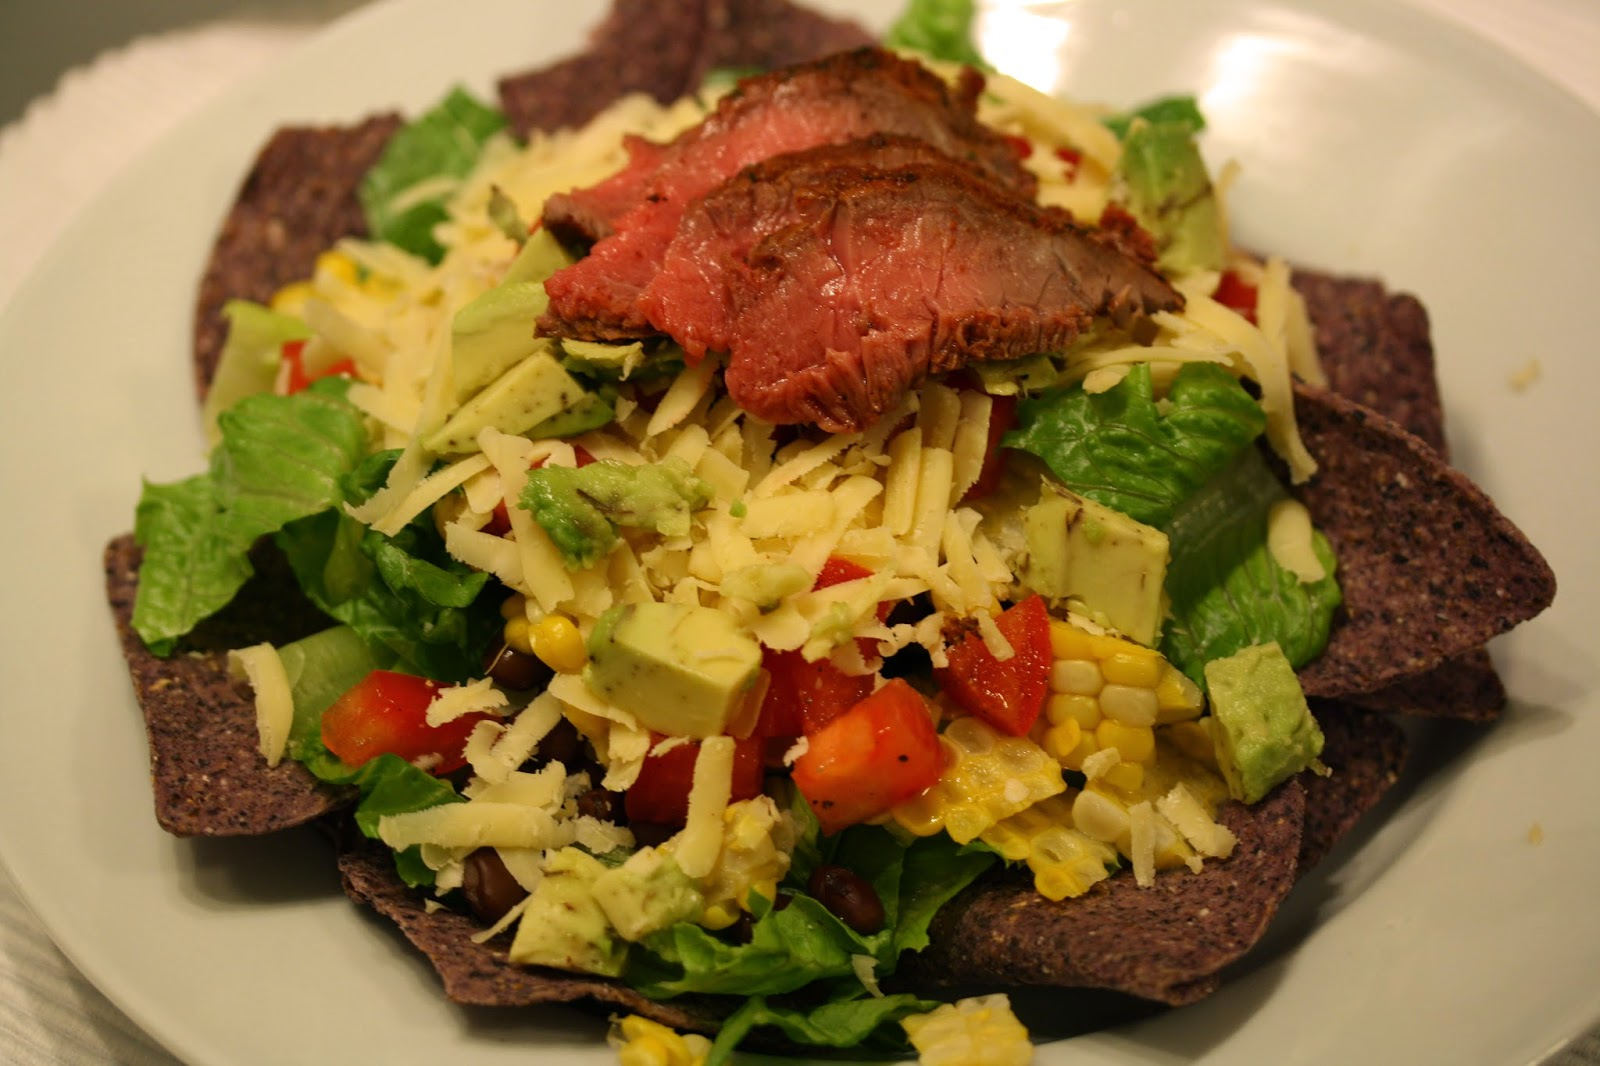 taco salad inspired by greens chocolate makes 2 gigantic salads